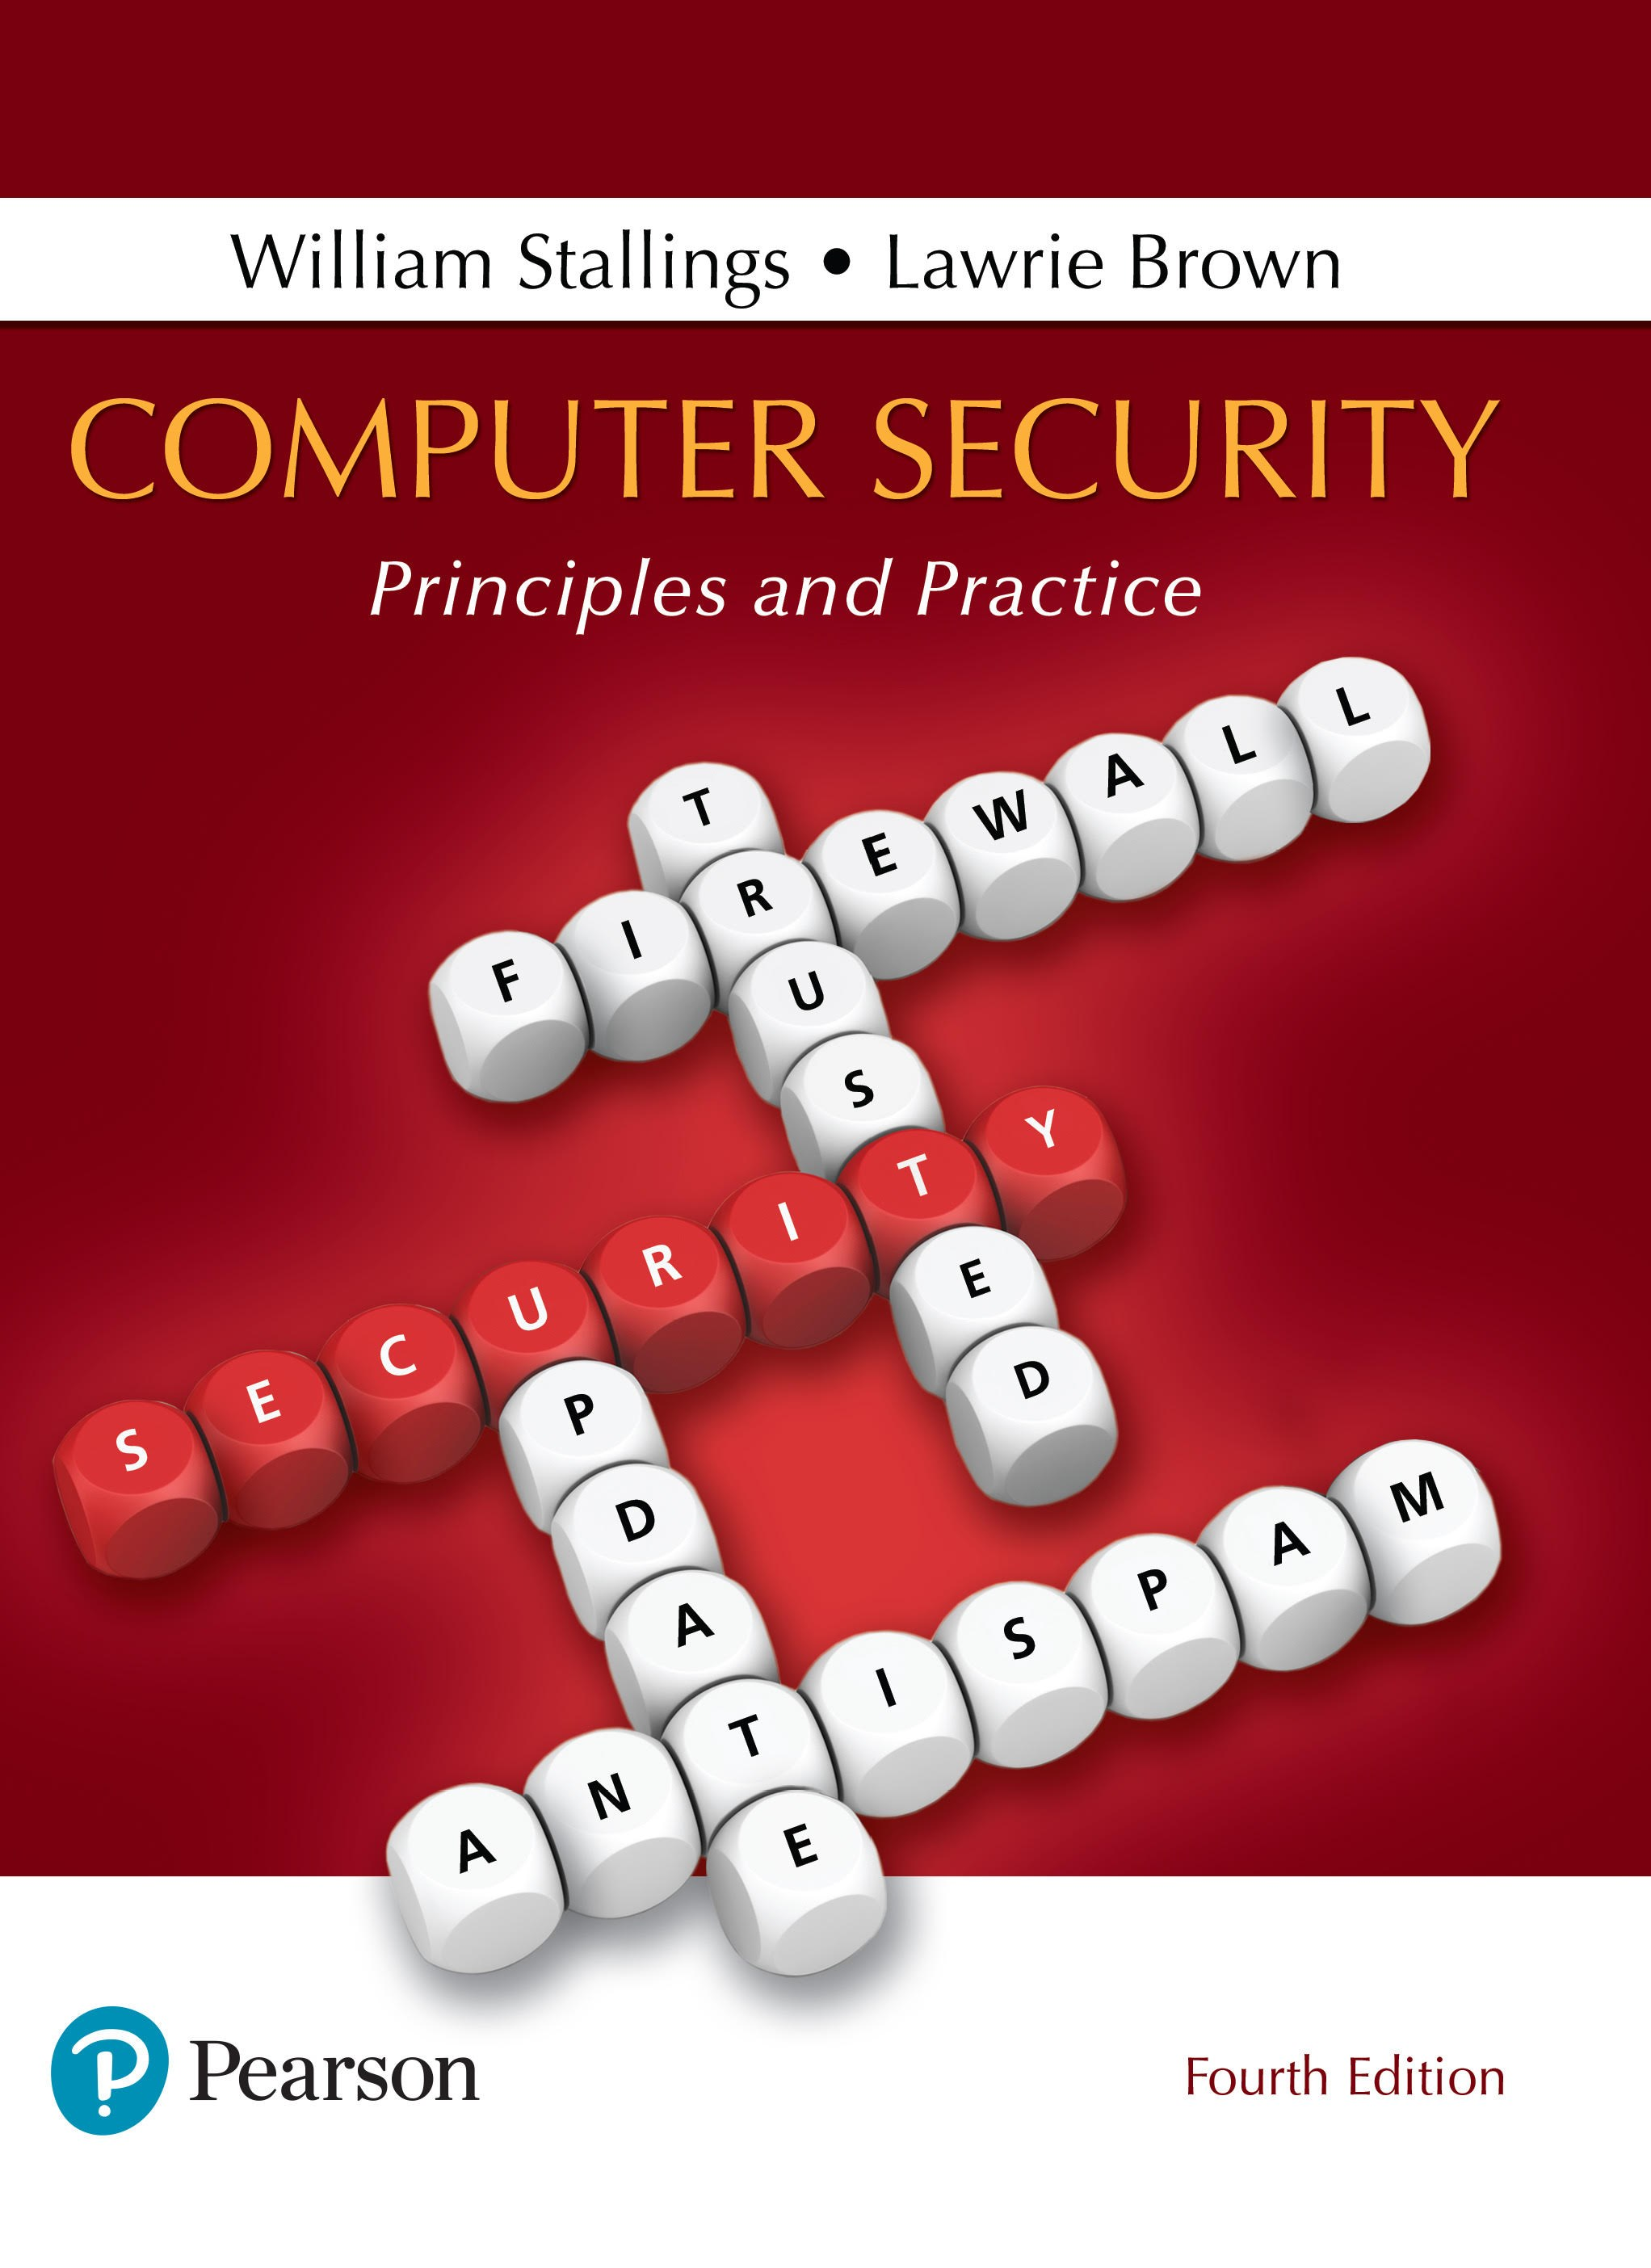 Computer Security: Principles and Practice, 4th Edition.